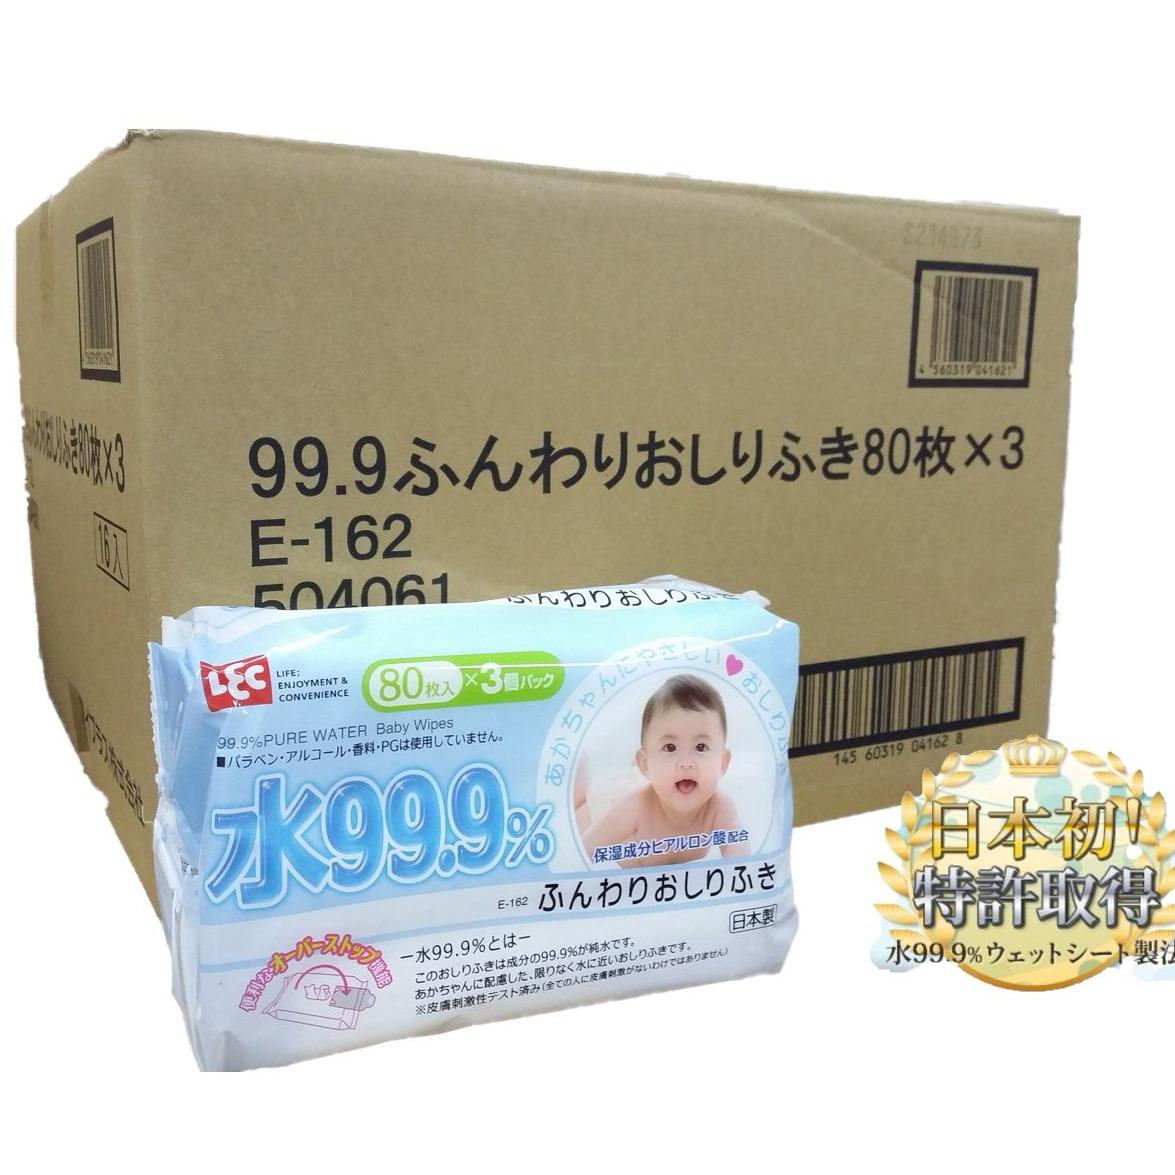 Compare Lec 99 9 Pure Water Wipes Everyday 16 X 3 Single Packs X 80 Sheets Jumbo Pack